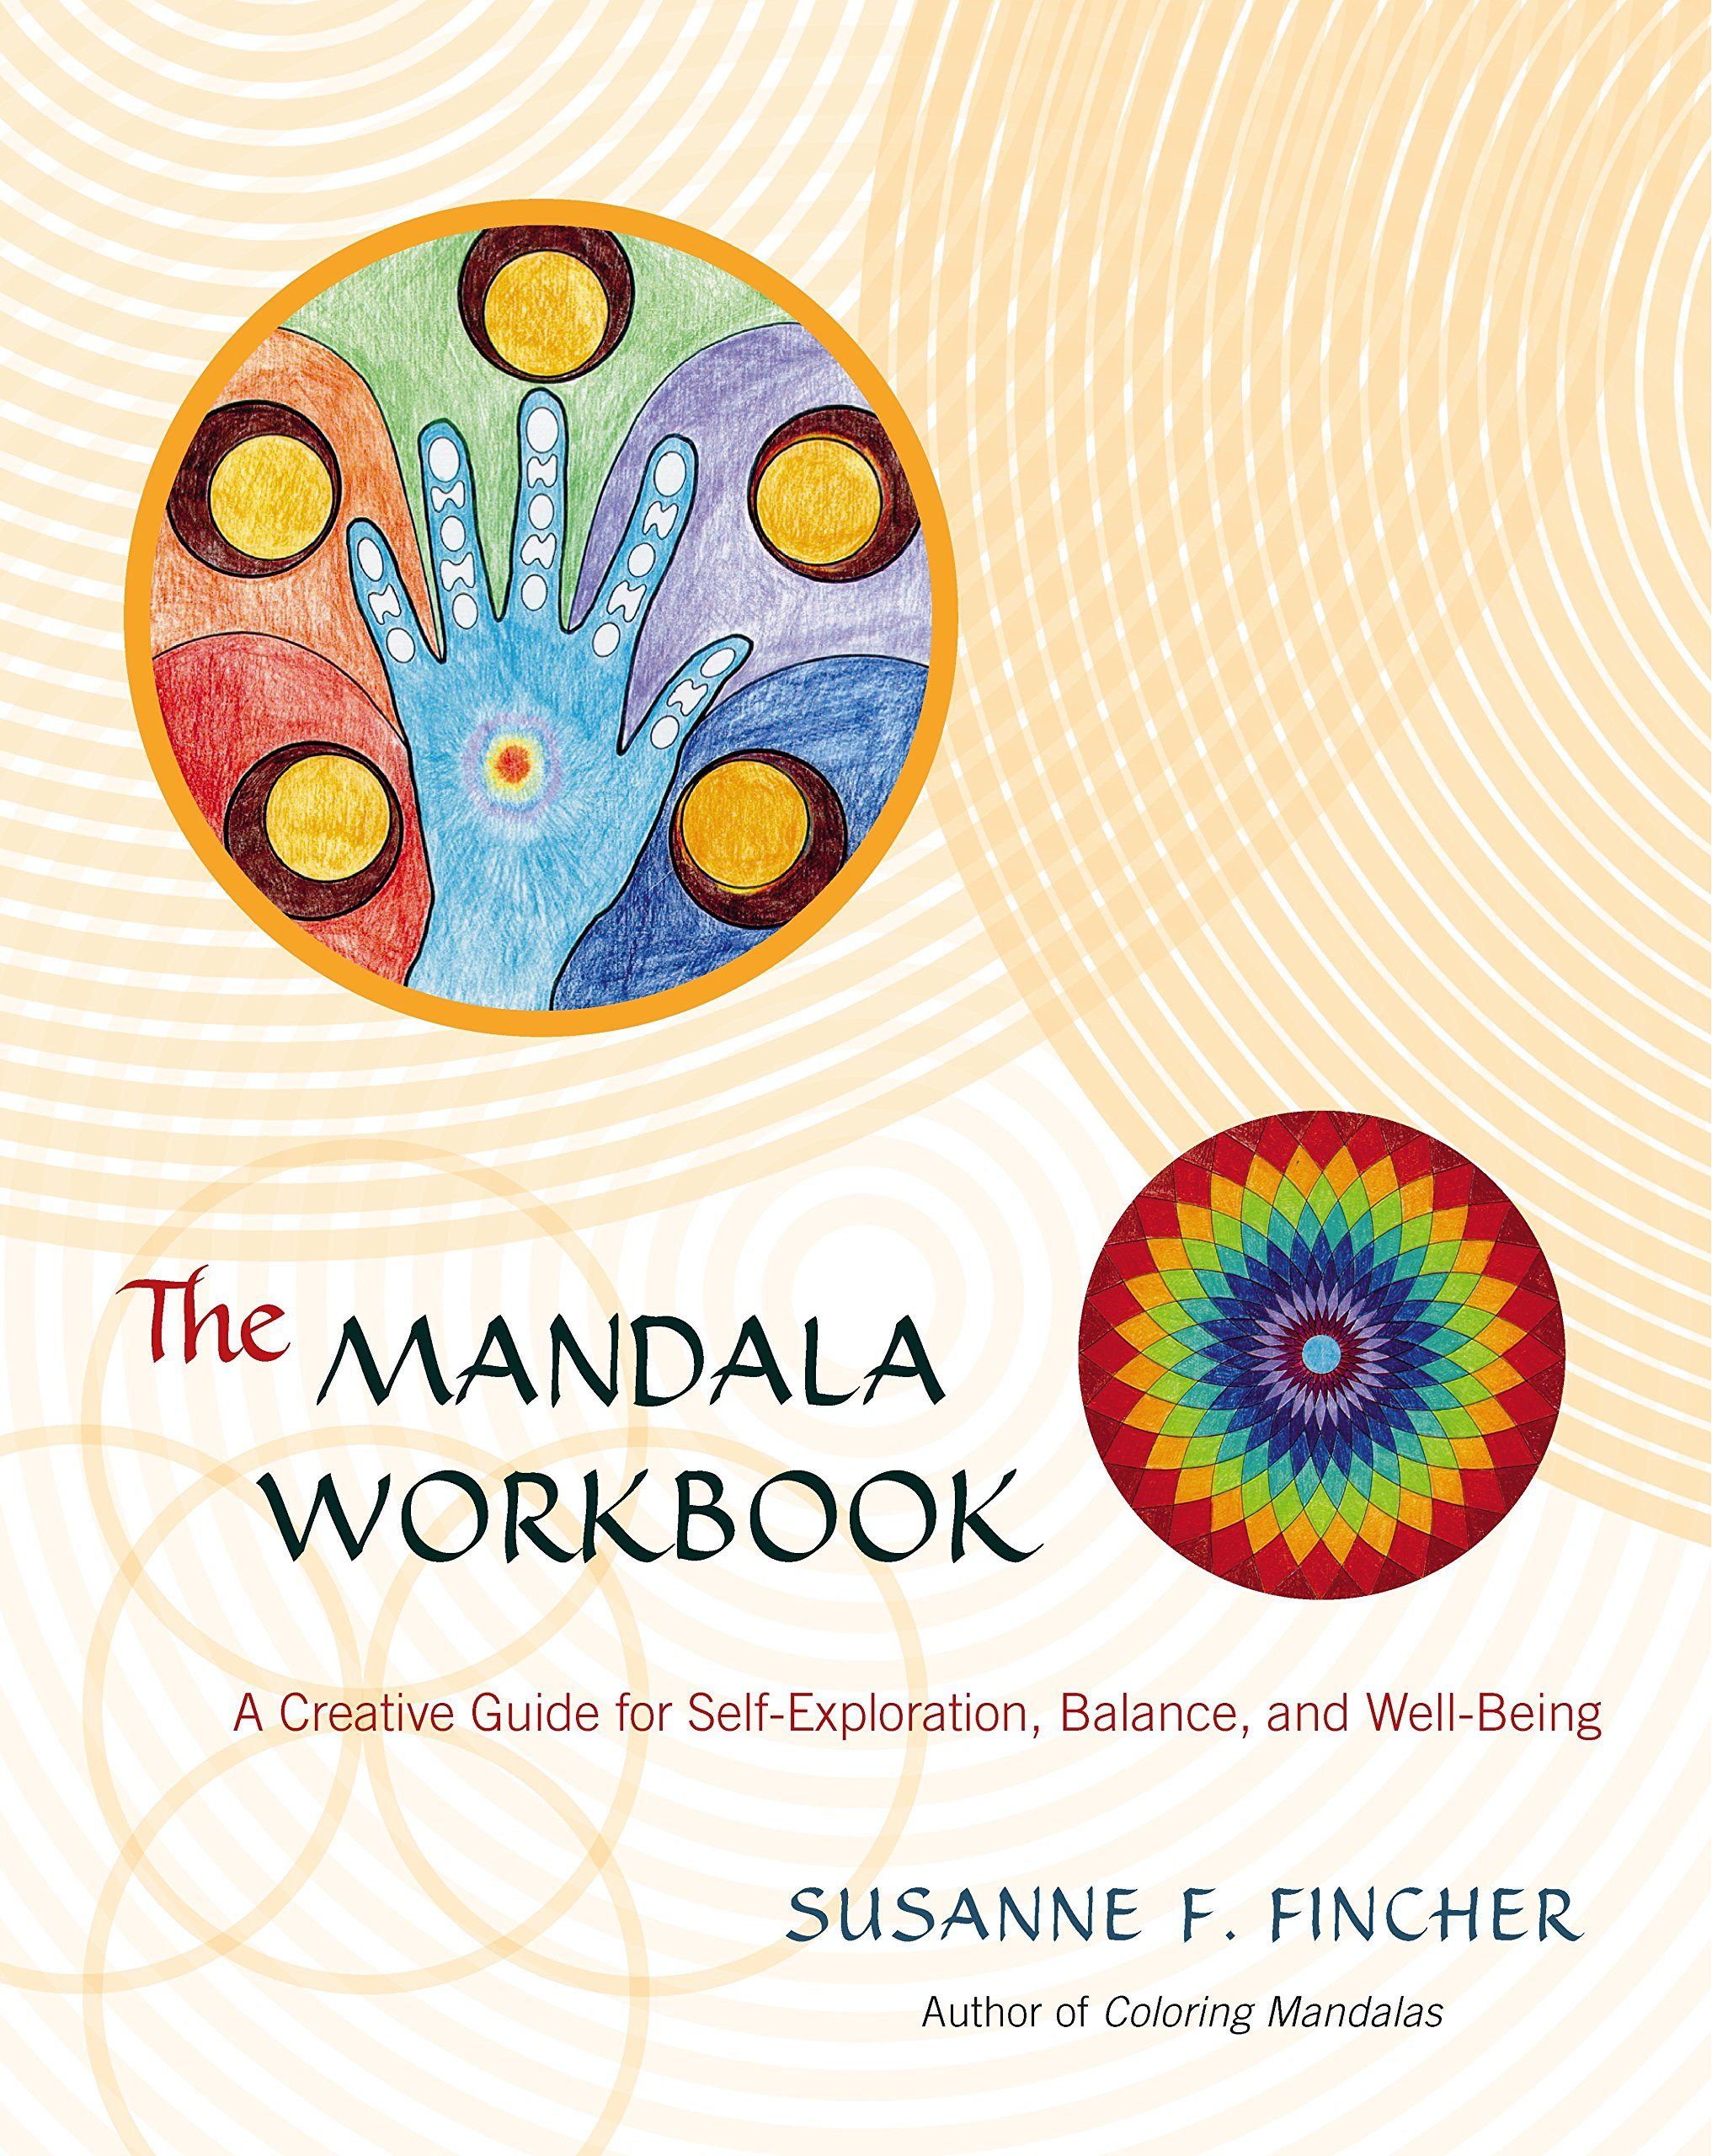 The Mandala Workbook: A Creative Guide for Self-Exploration, Balance, and Well-Being by Brand: Shambhala